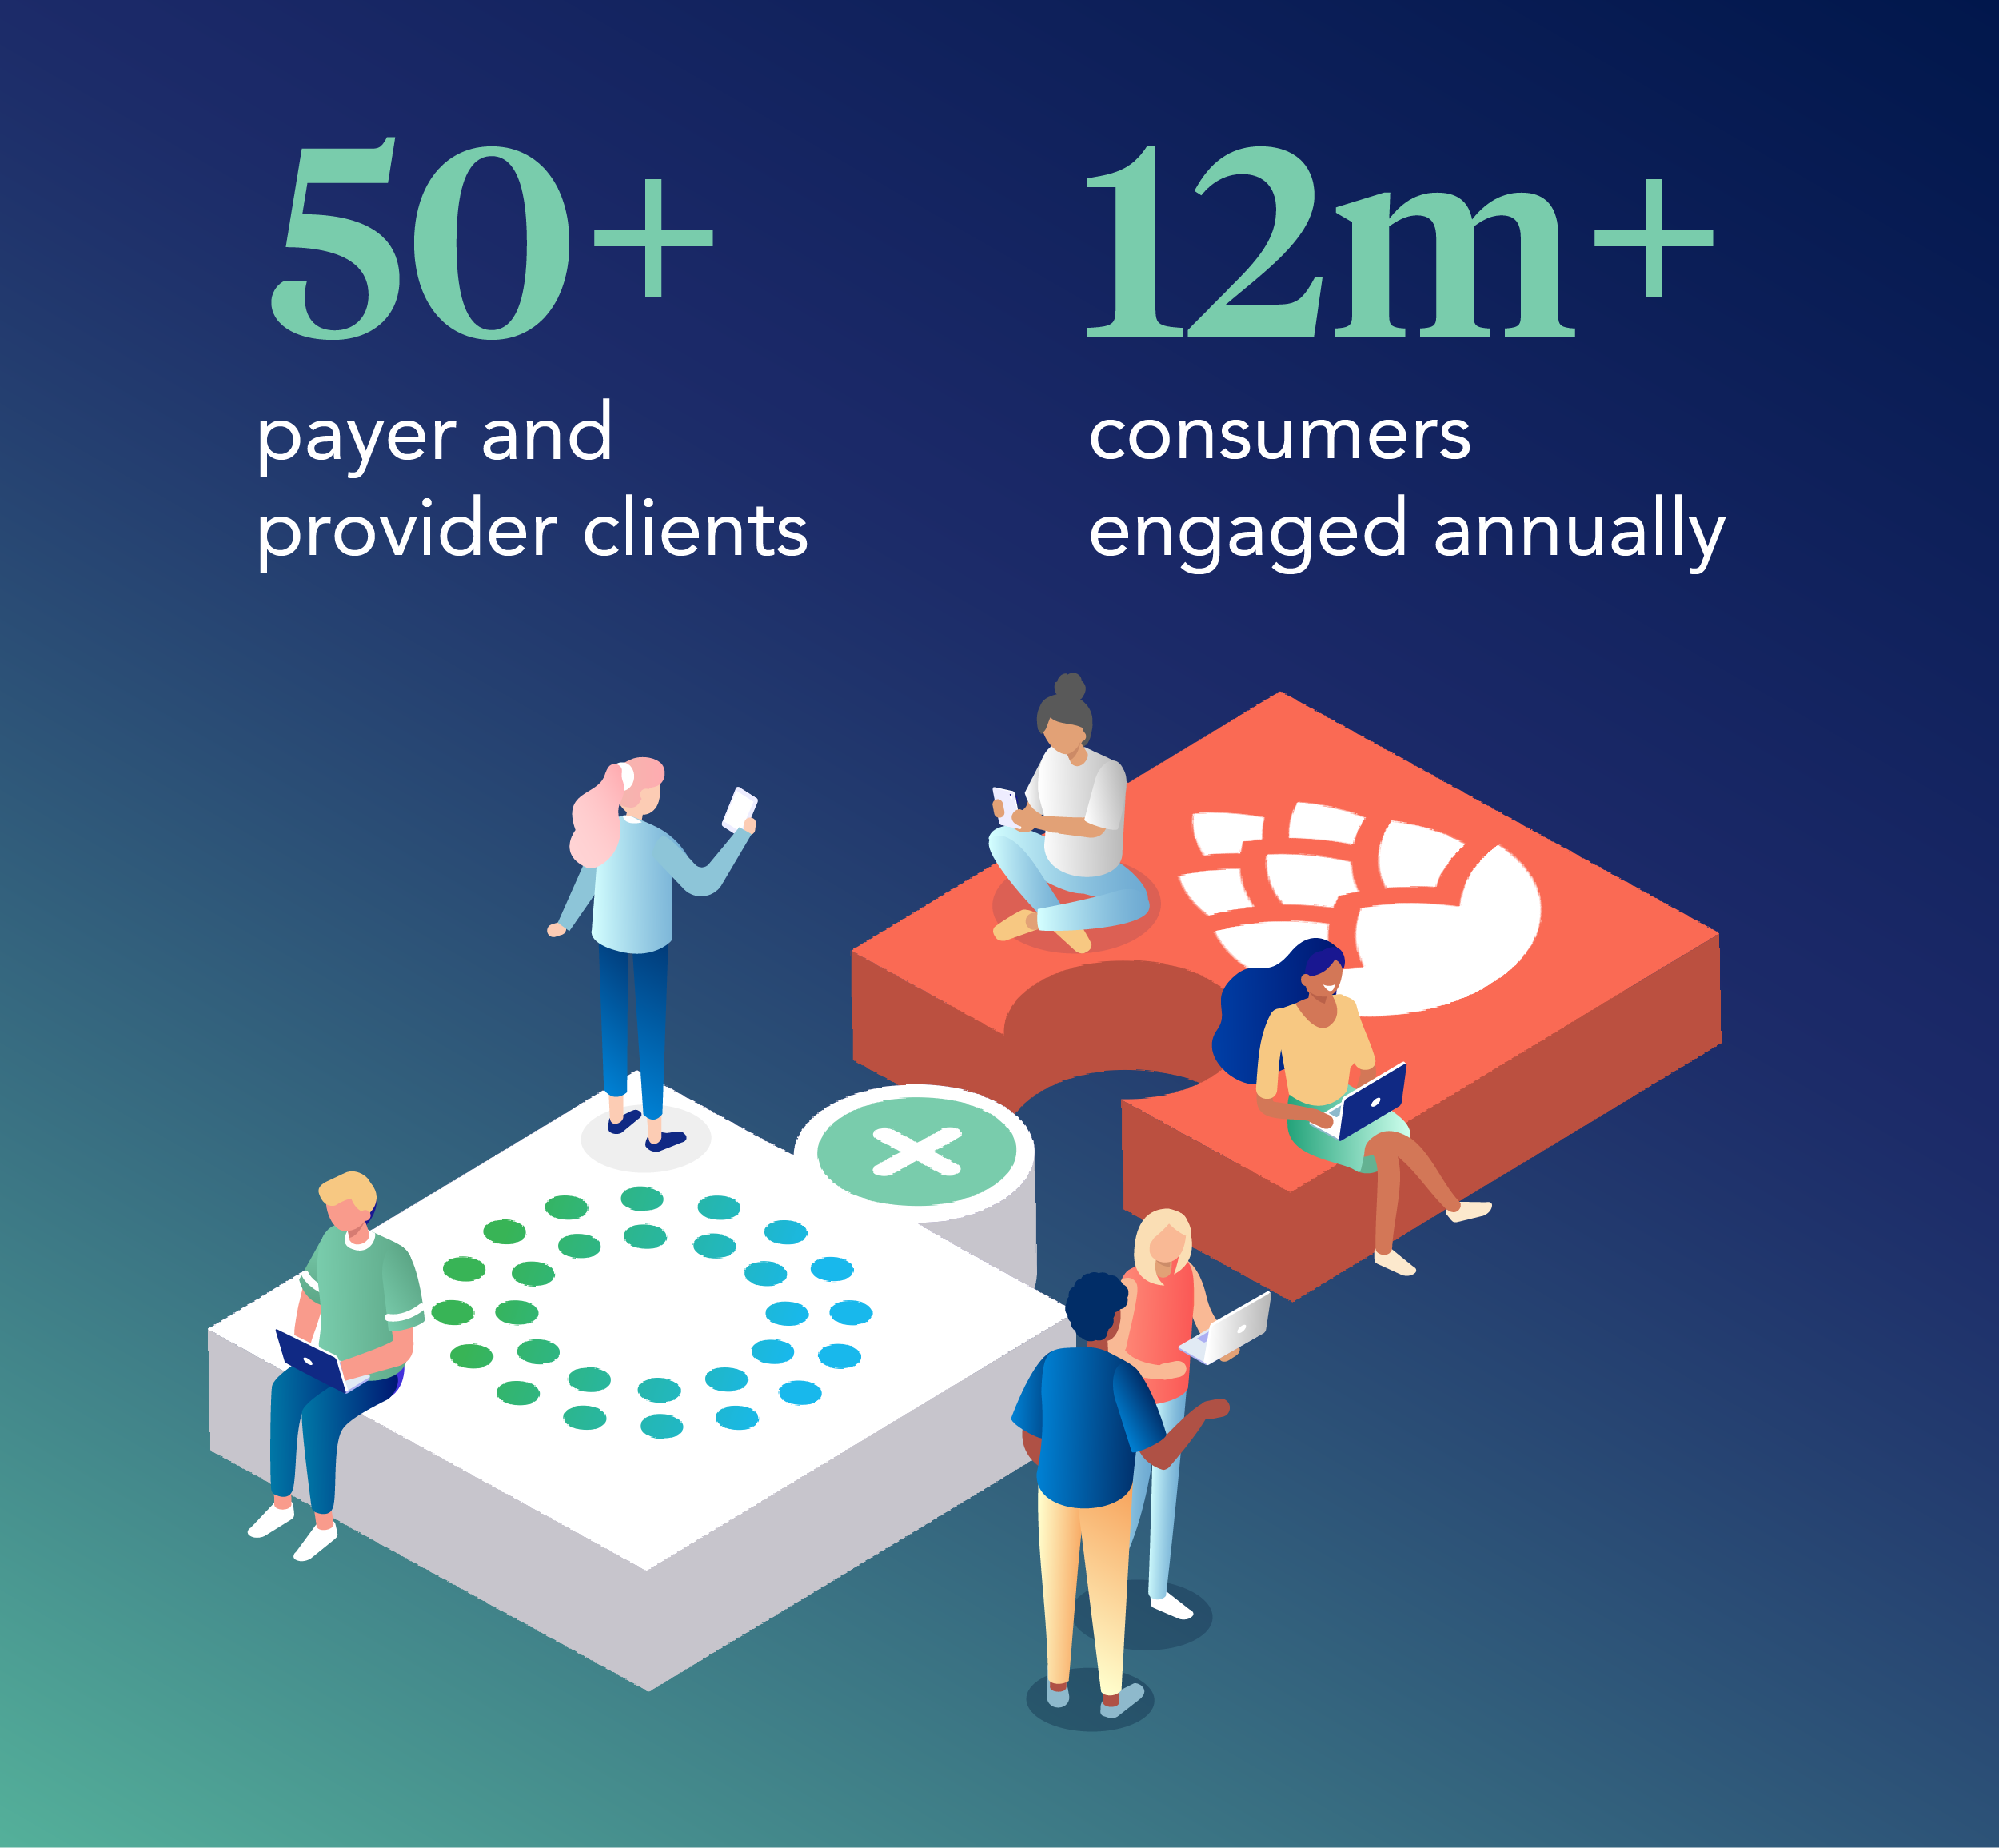 50+ payer and provider clients, 12m+ consumers engaged annually